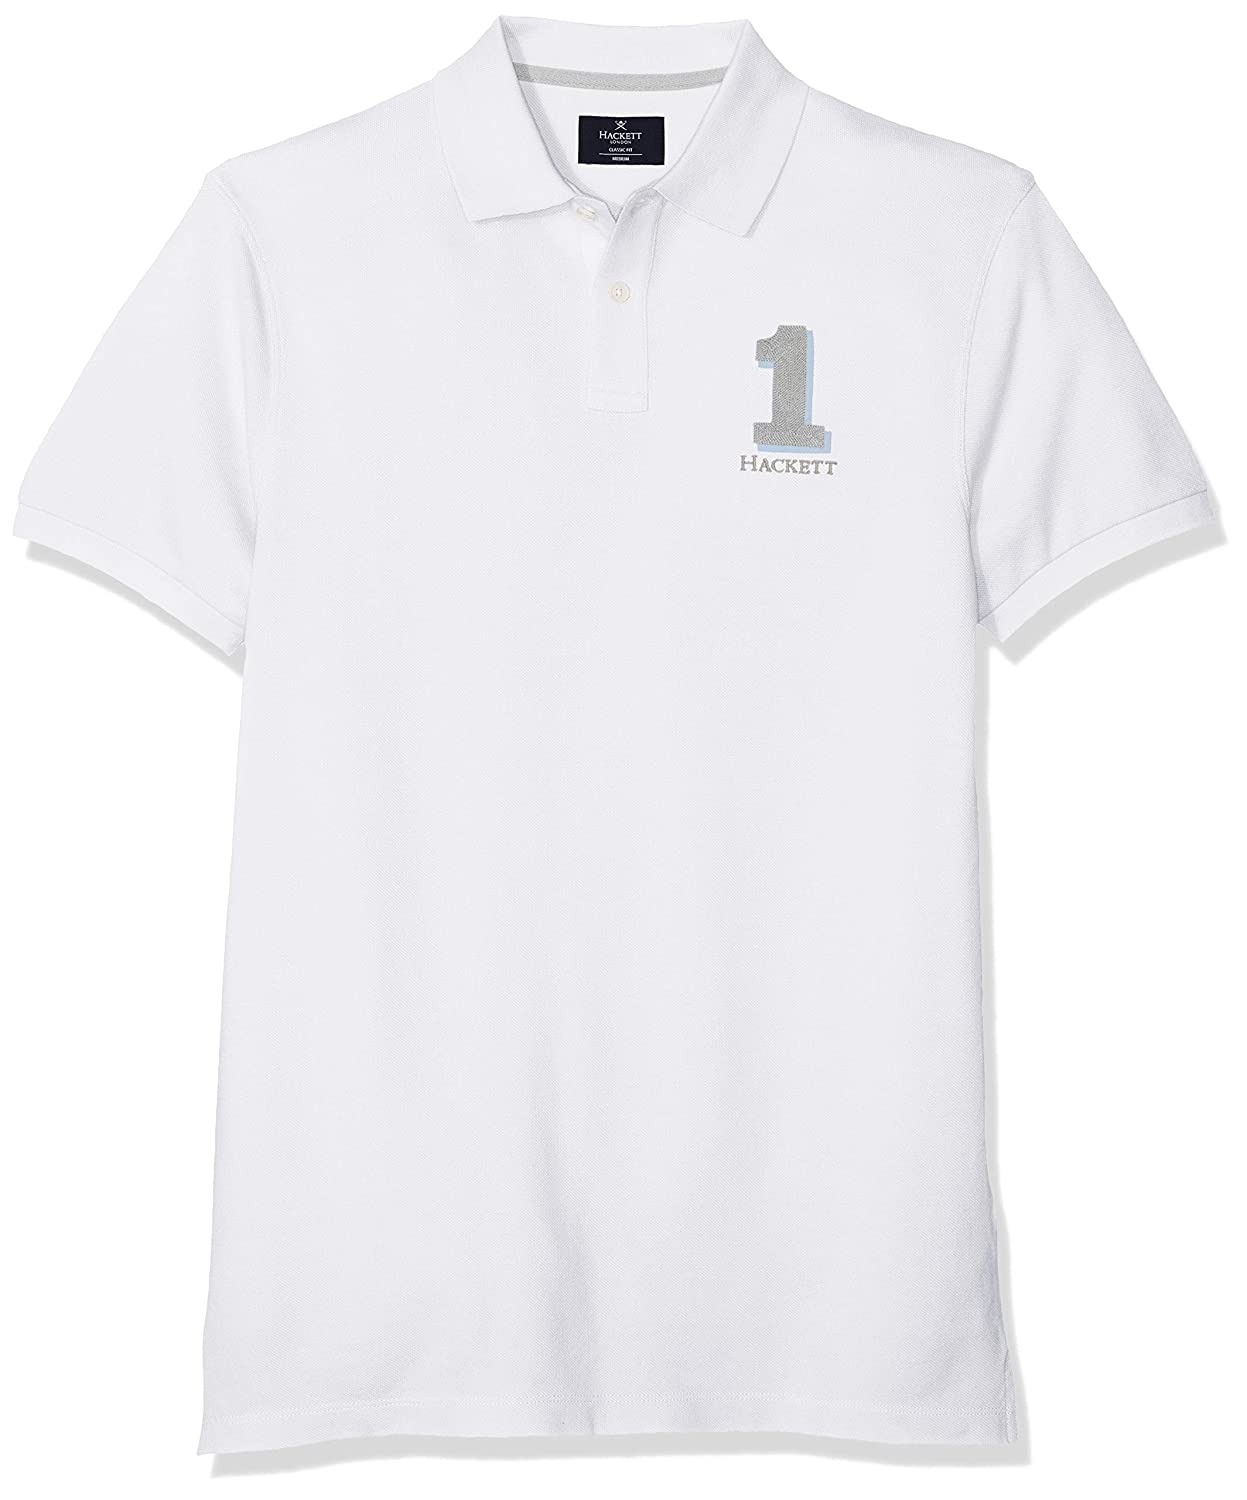 Blanc (Optic blanc 802) S Hackett London nouveau Classic Polo Homme